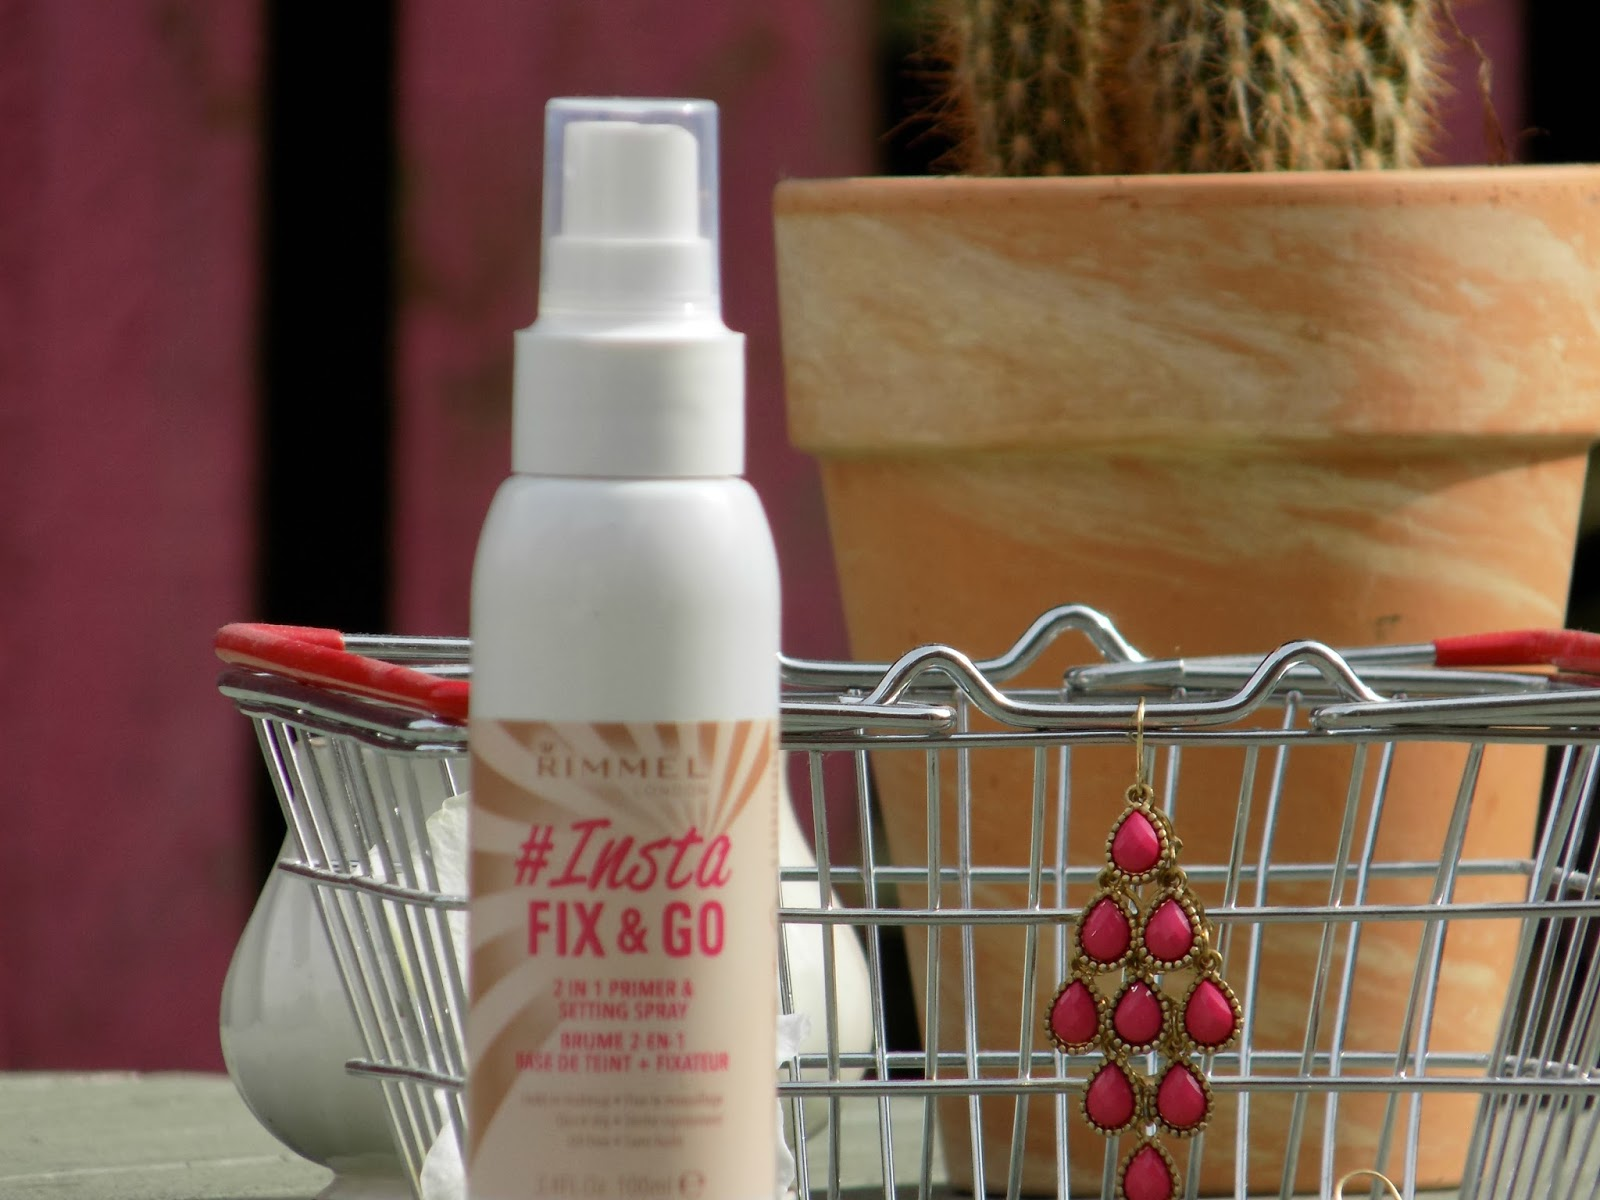 rimmel #insta fix & go spray